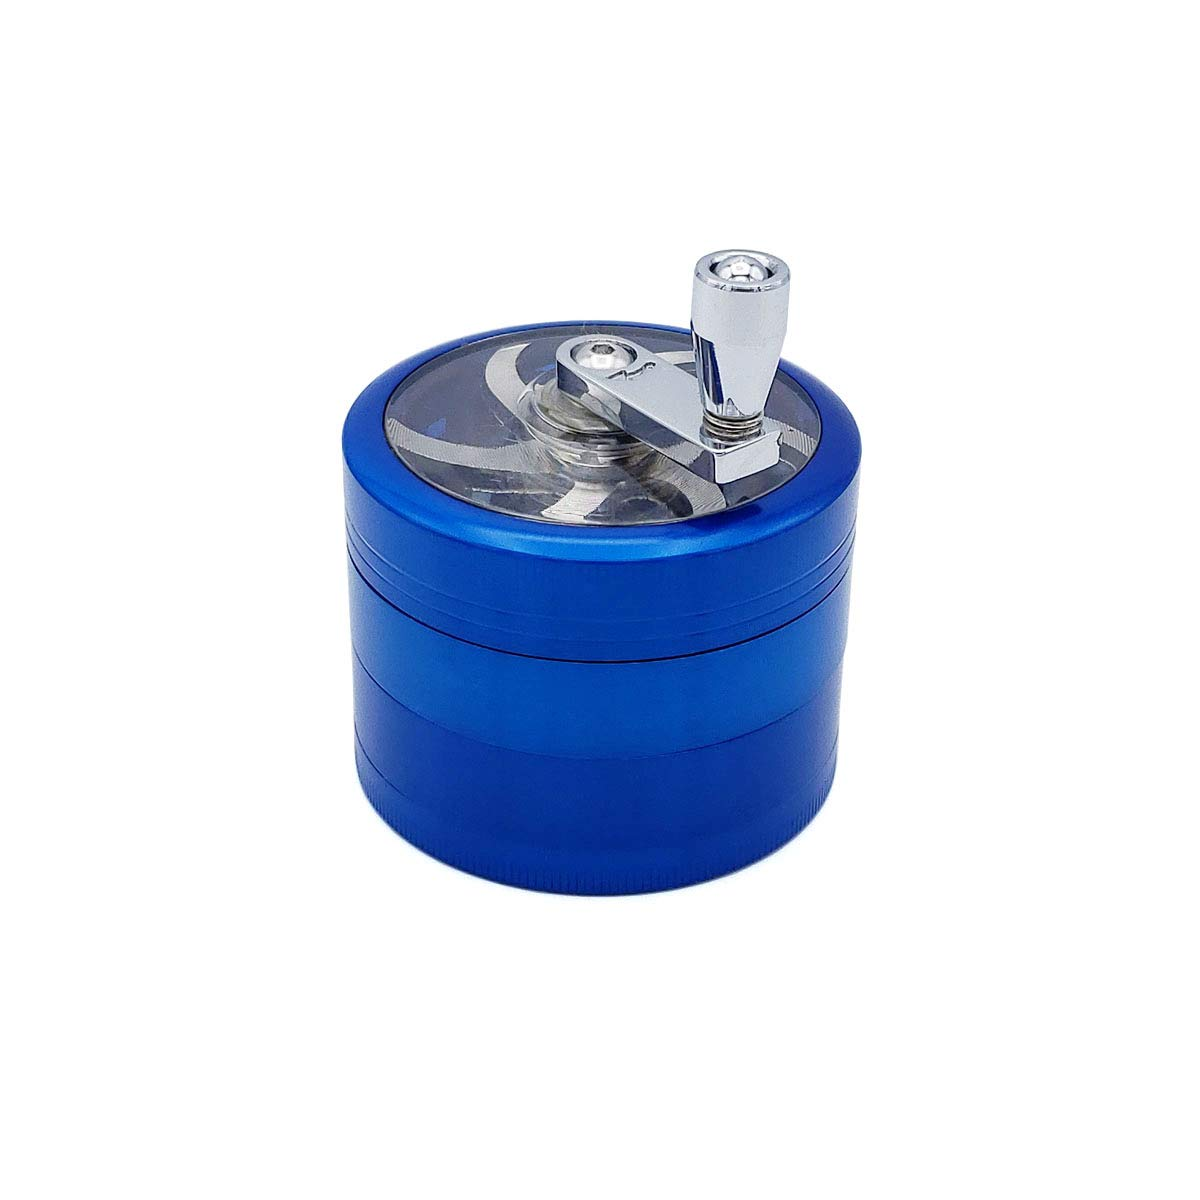 Gifts Infinity Personalized Herb, Spice Durable 62mm 2.5 Inches Grinder free engraving (Mill Blue) by GIFTS INFINITY